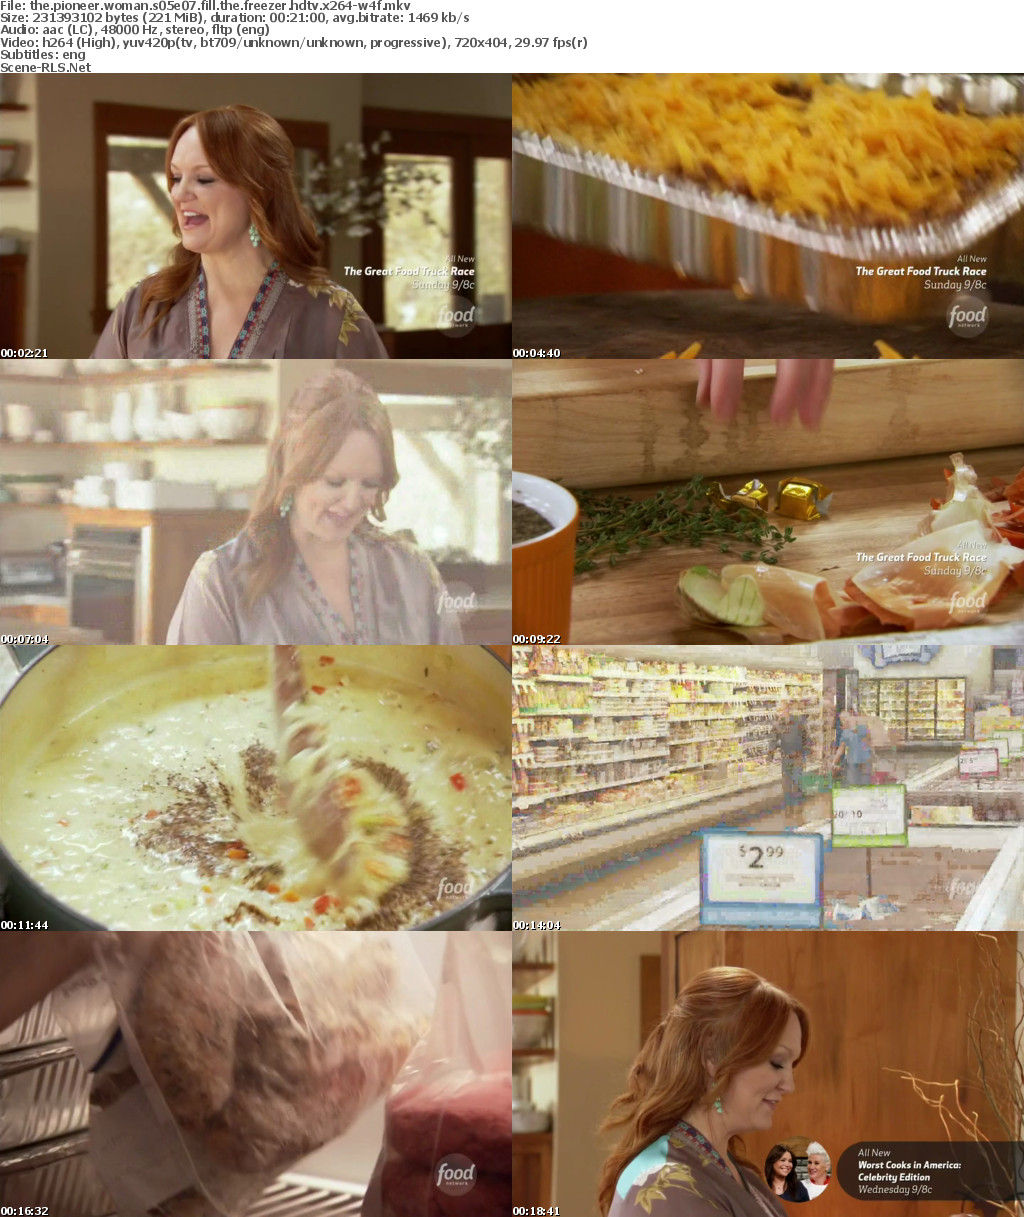 Ree Drummond's filling up the freezer with family favorites that are great standbys. She's making Sour Cream Noodle Bake, Chicken Pot Pies with delicious Thyme Pastry and Creamy Carrot Soup.